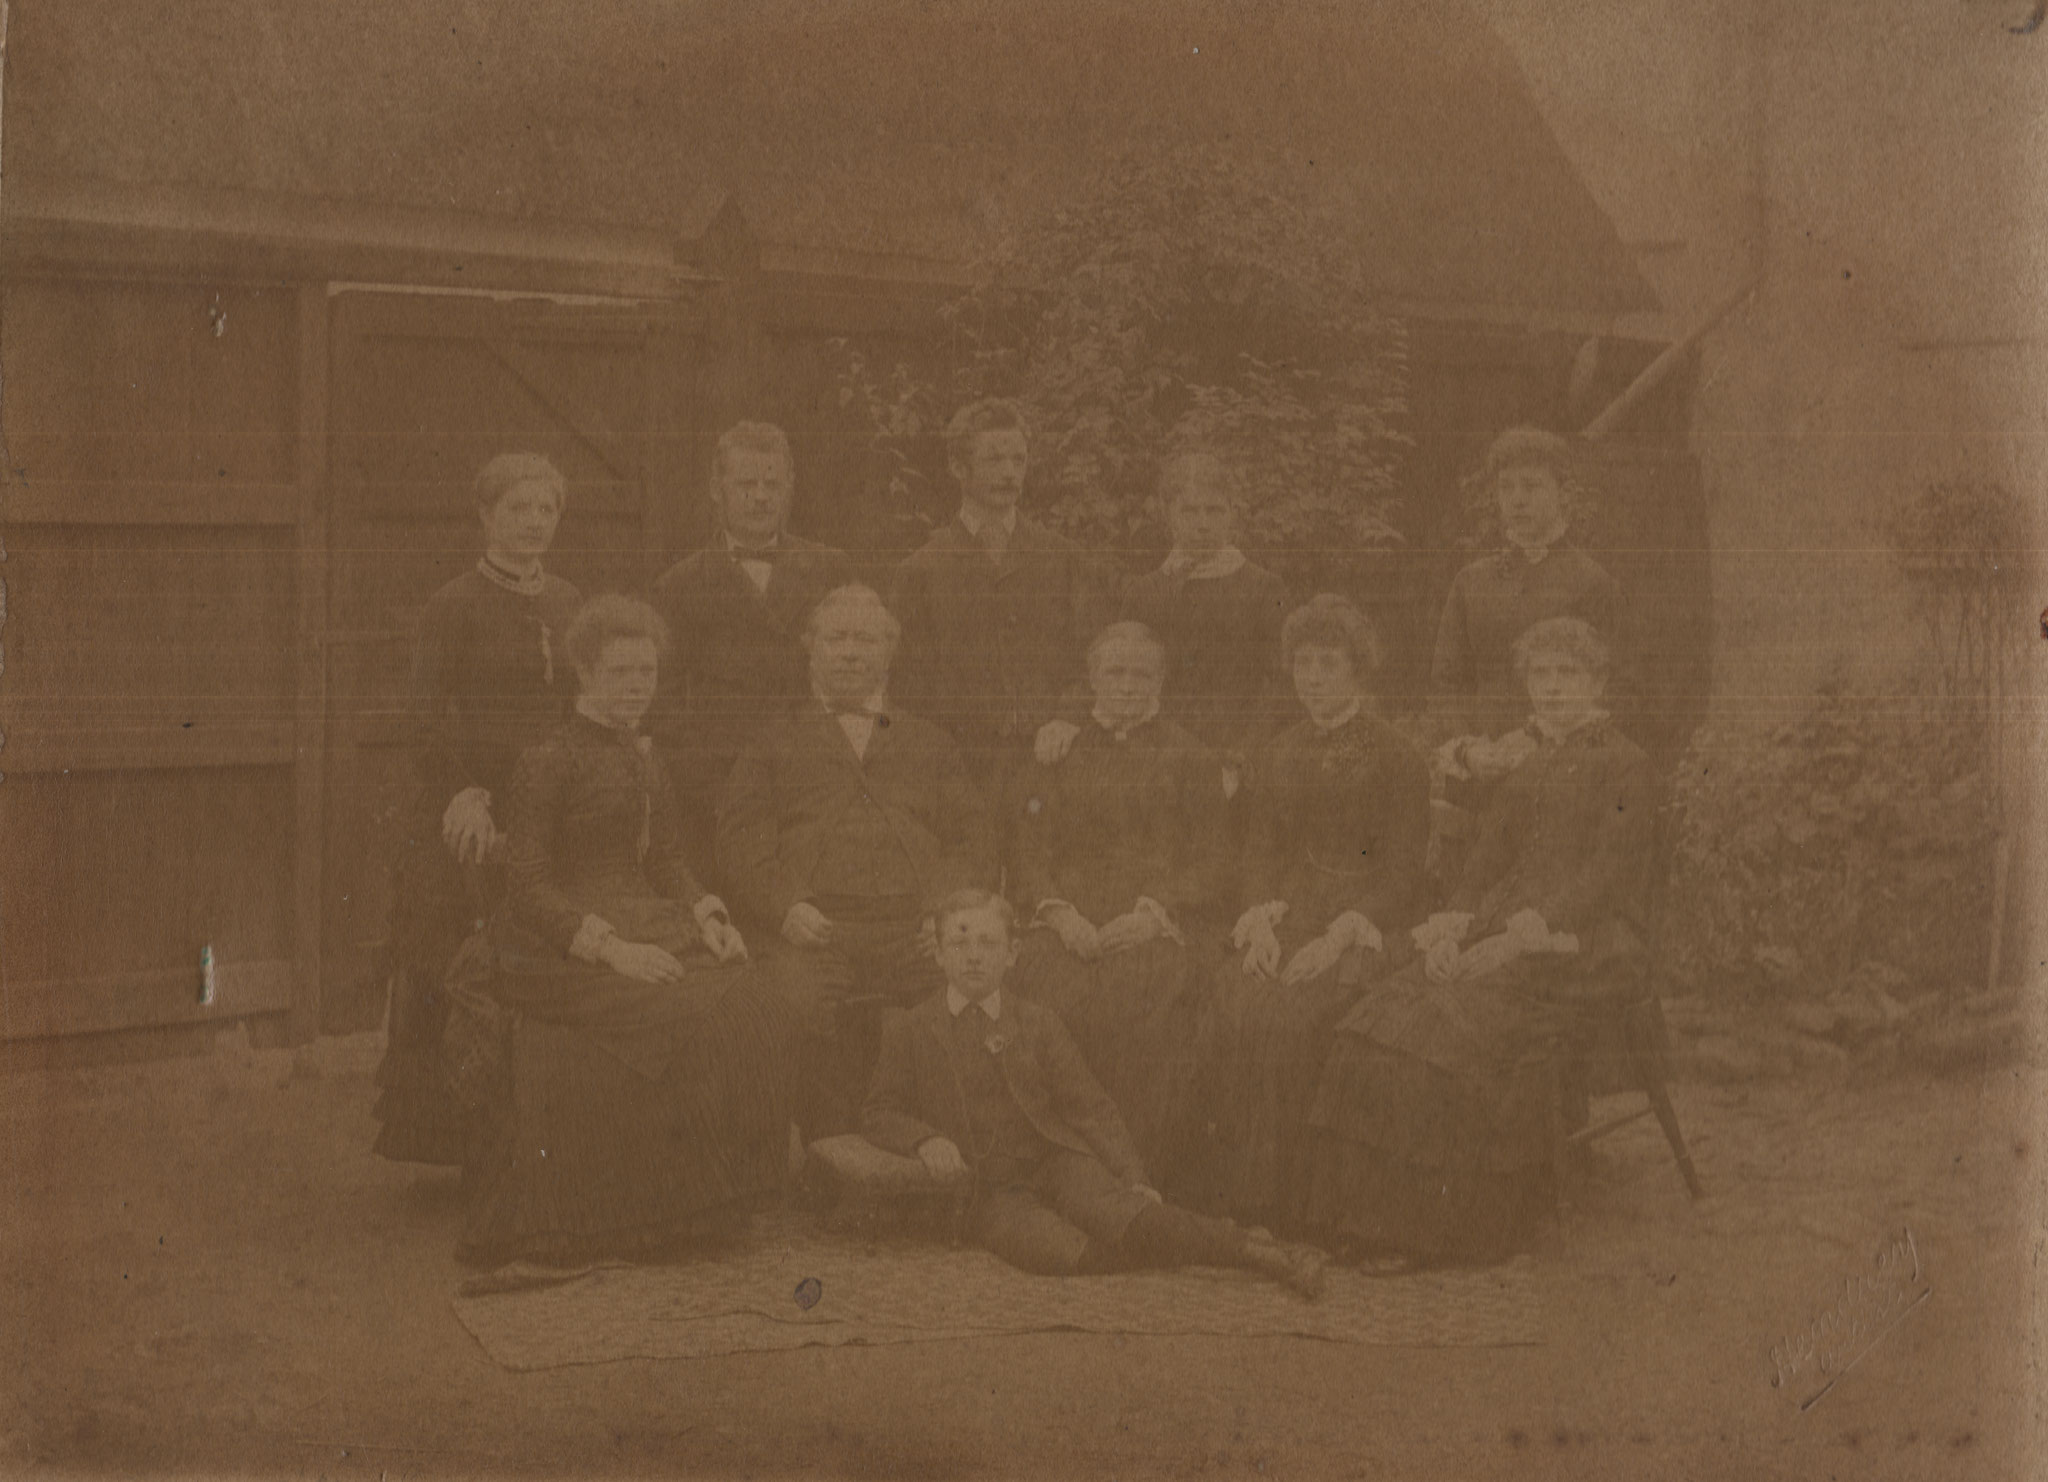 The Hodson Family, Elsworth, Brook Street. From left right, back row, Alberta, ?,?,?, Flora; middle row, ?, William, Jane, Clara Jane, ?; Martin in front.